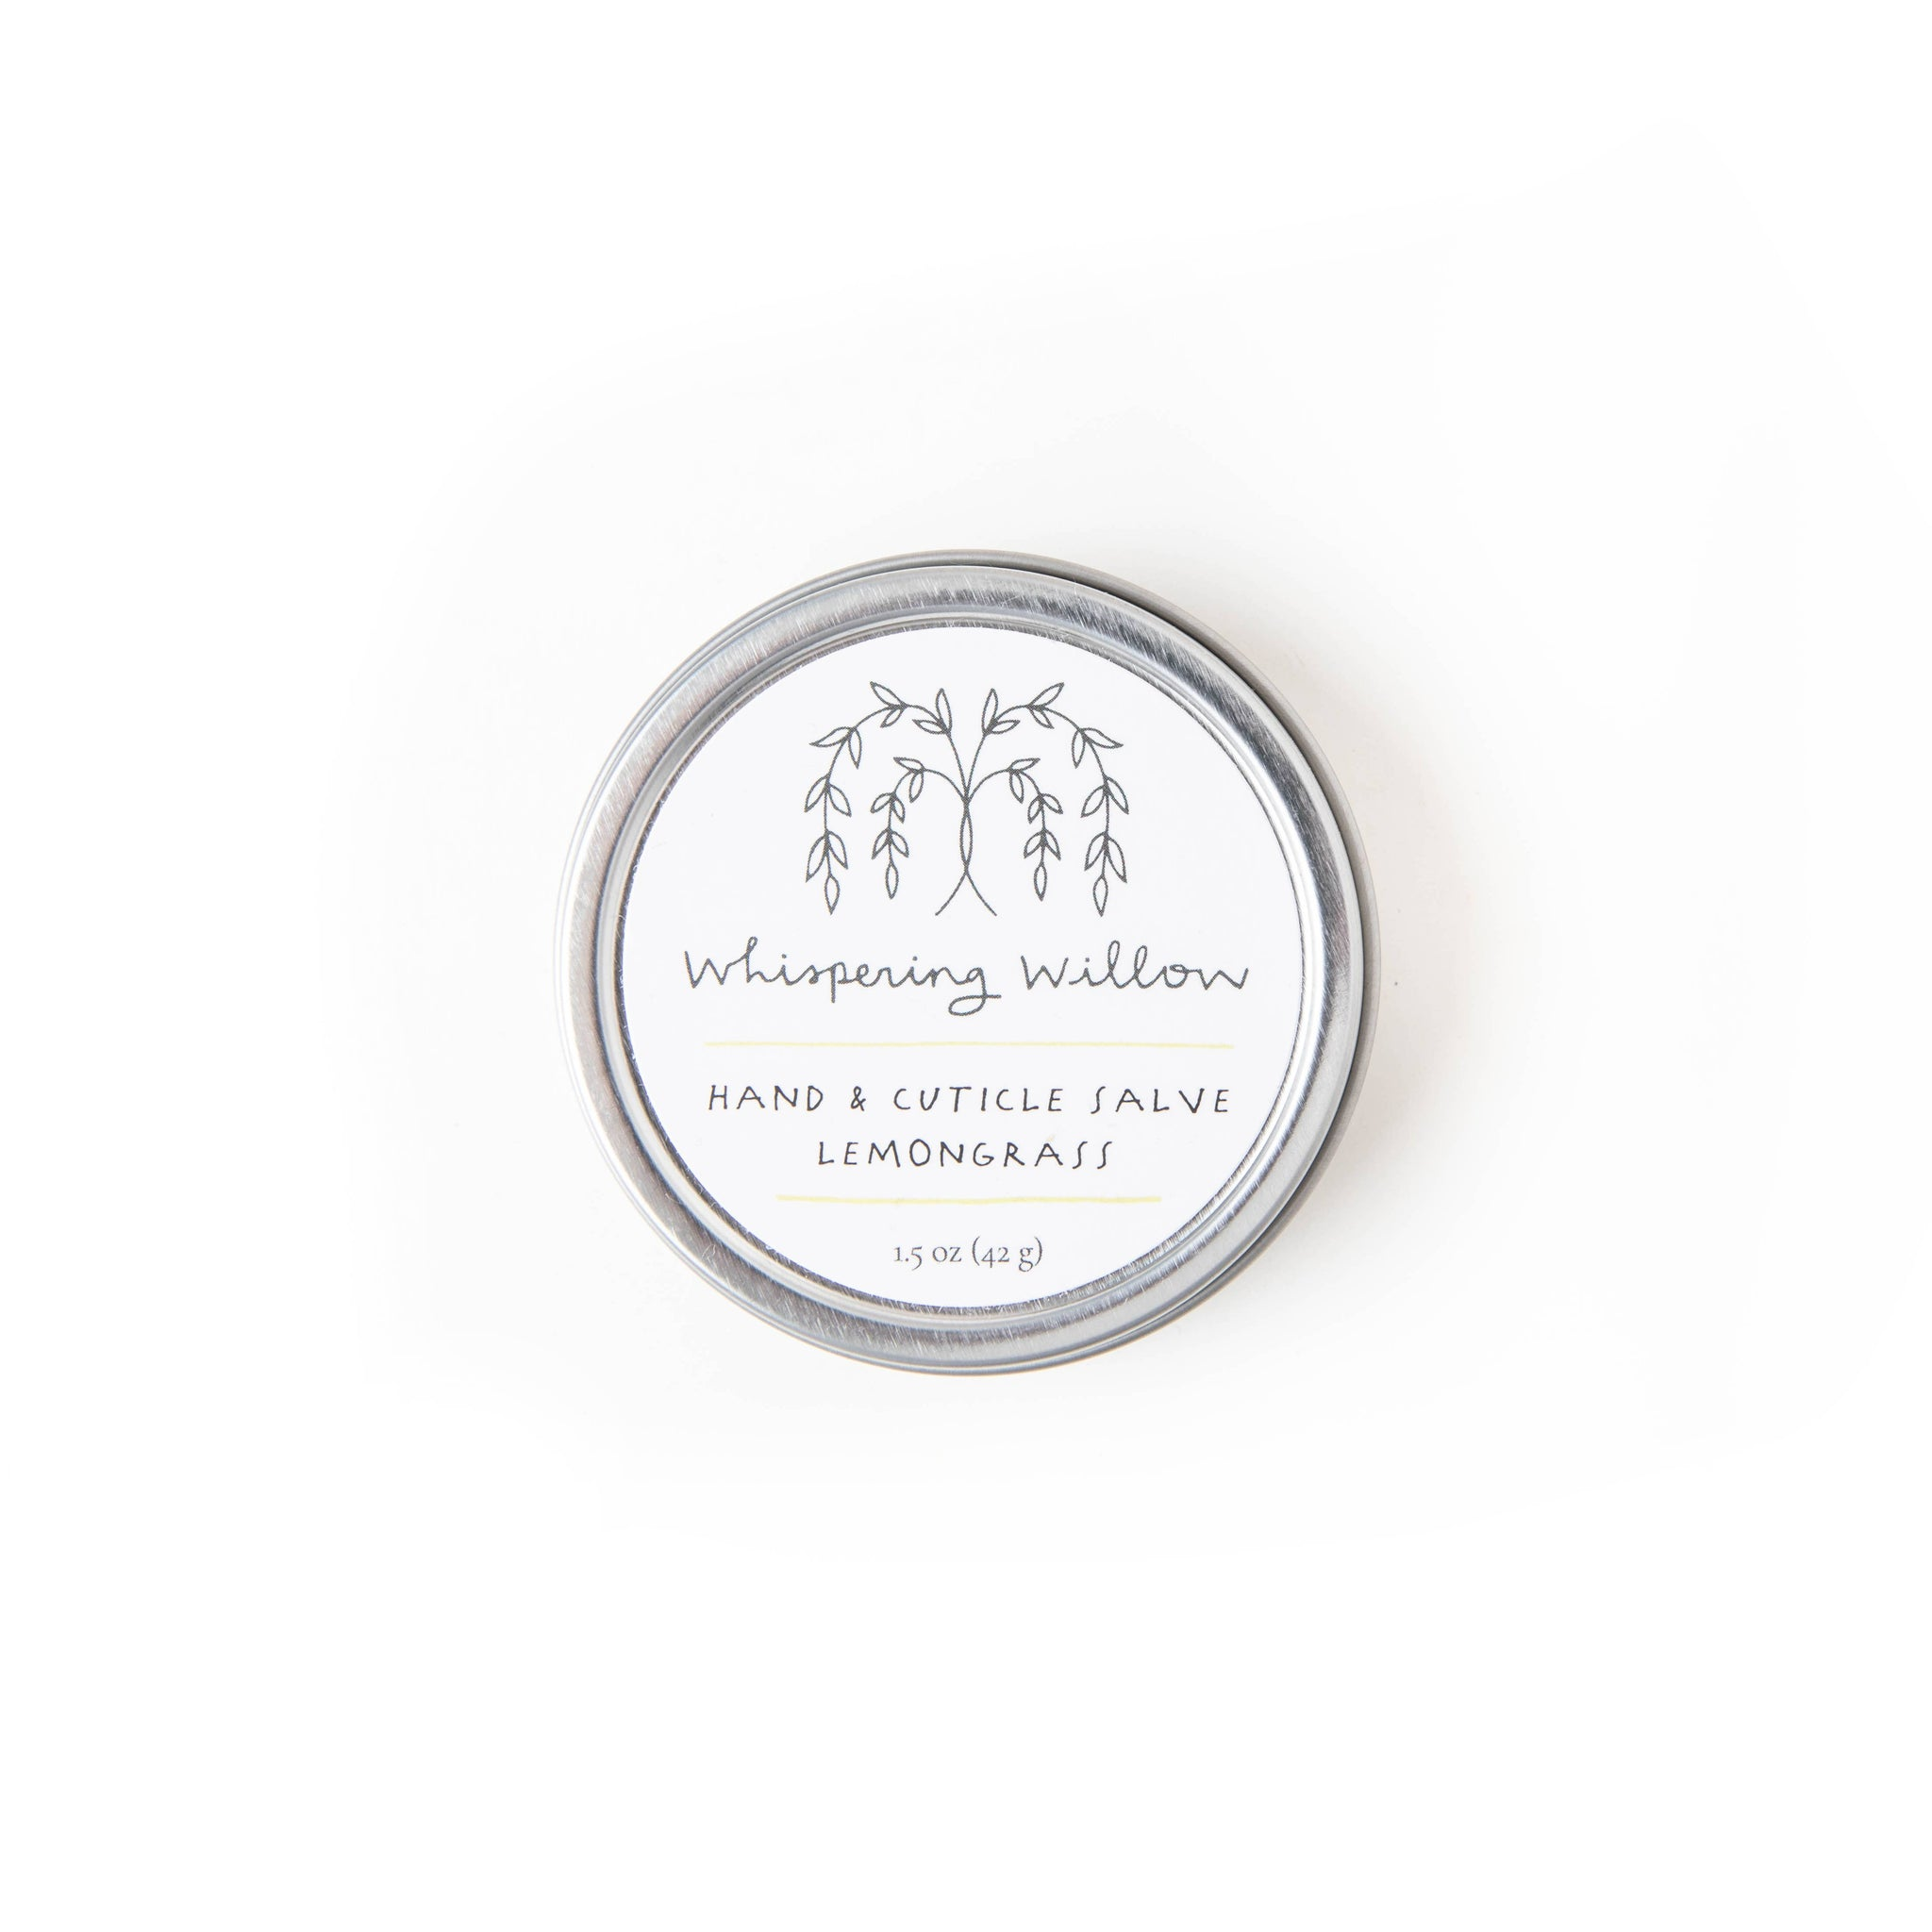 Lemongrass Hand & Cuticle Salve